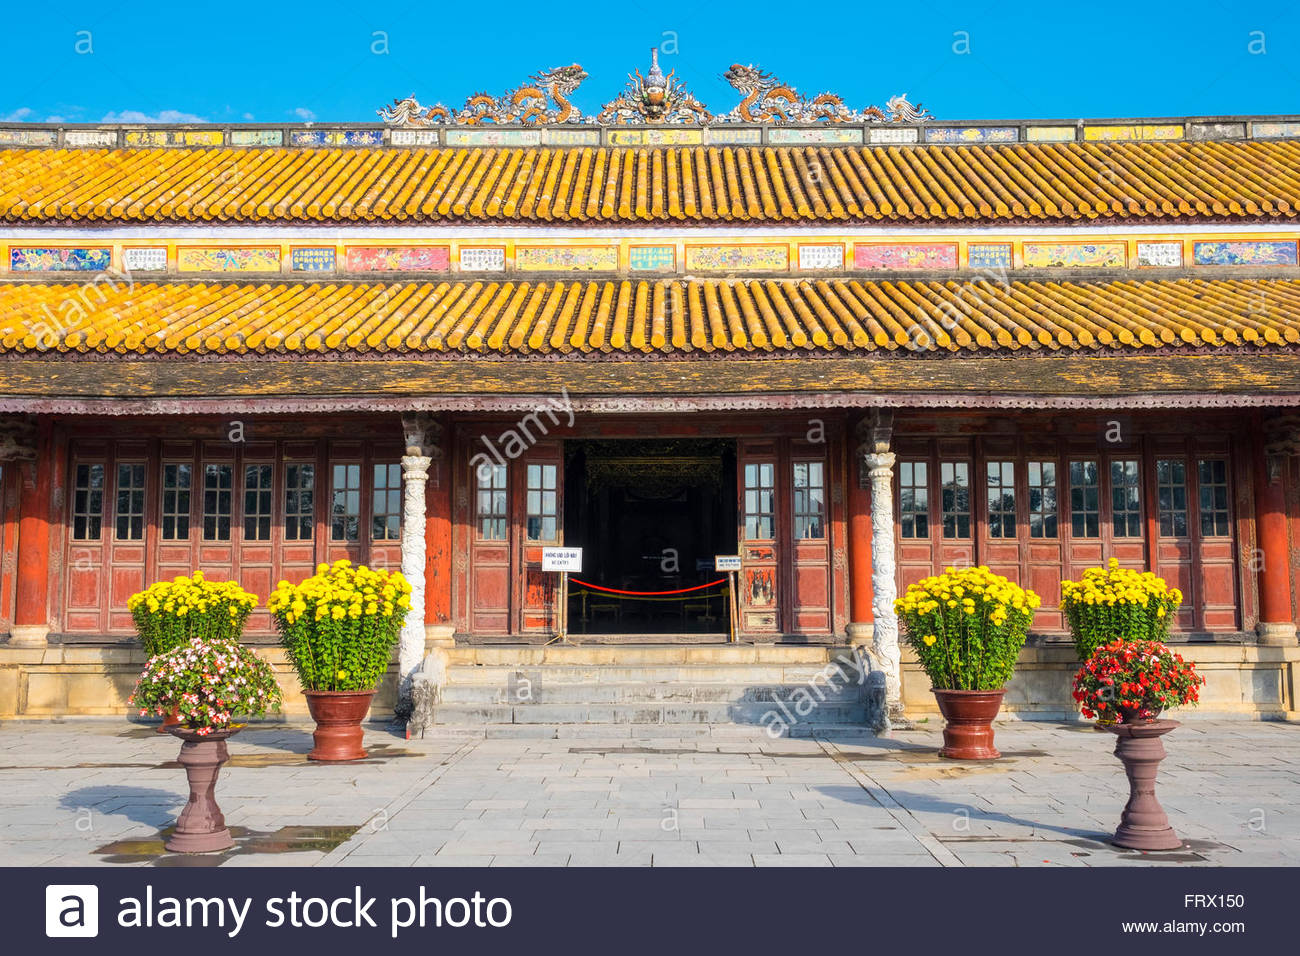 Thai Hoa Palace (Hall of Supreme Harmony), Imperial City of Hue, Thua Thien-Hue Province, Vietnam Stock Photo